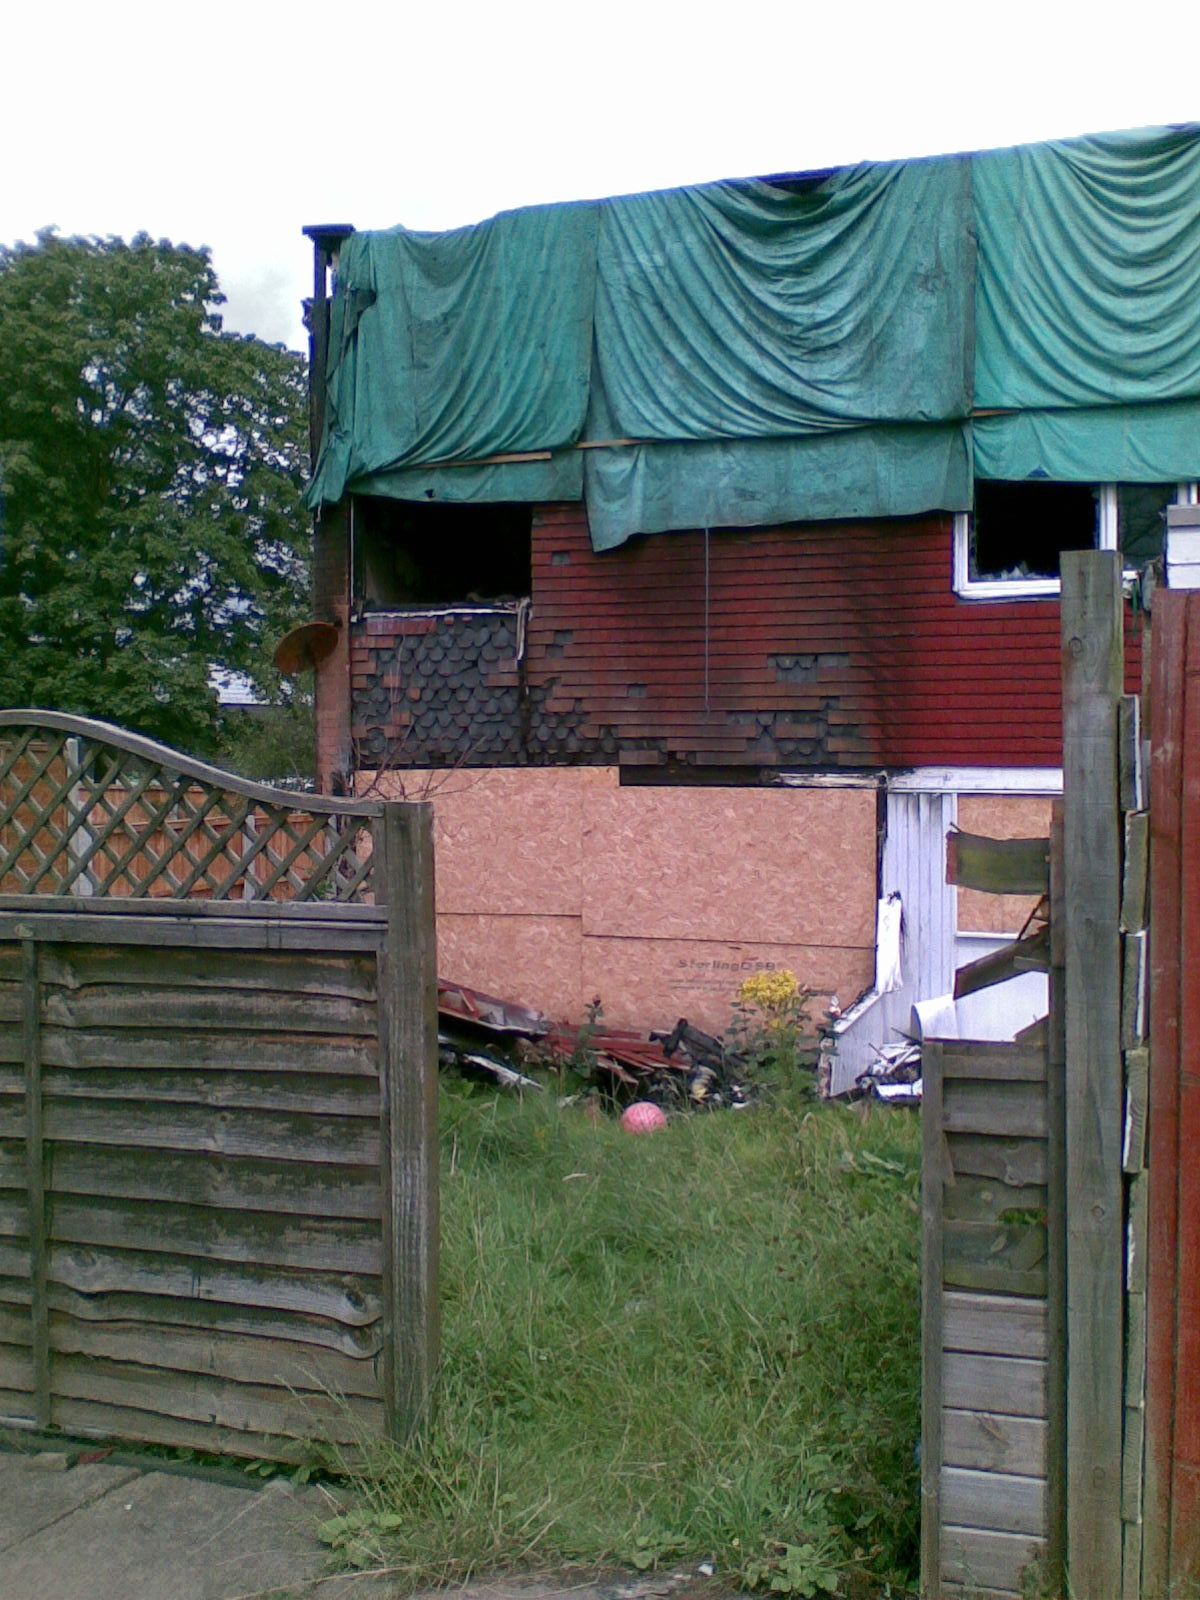 This empty property in Sutton Hill, Telford, was set on fire